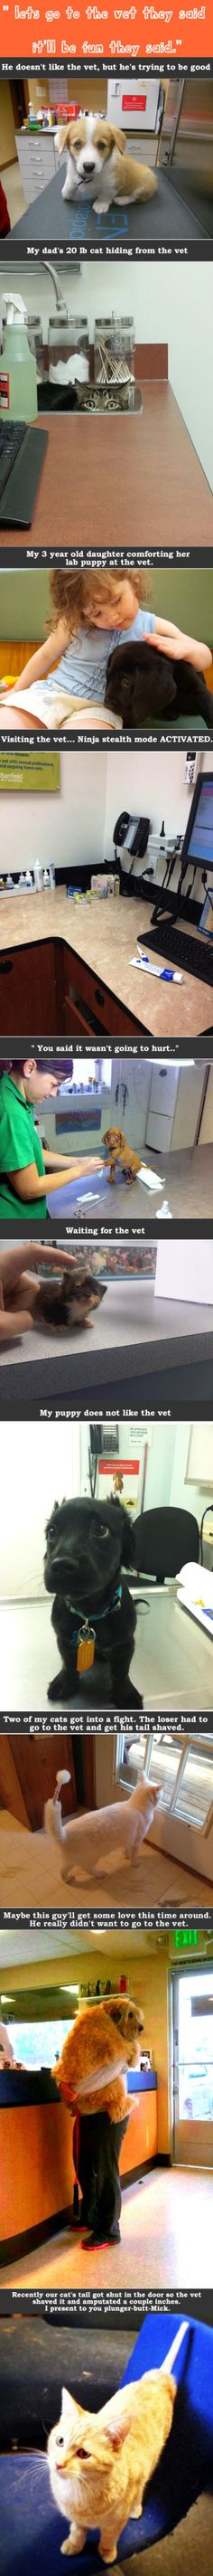 funny pet vet: lets go to the vet they said, it'll be fun they said. loldamn.com